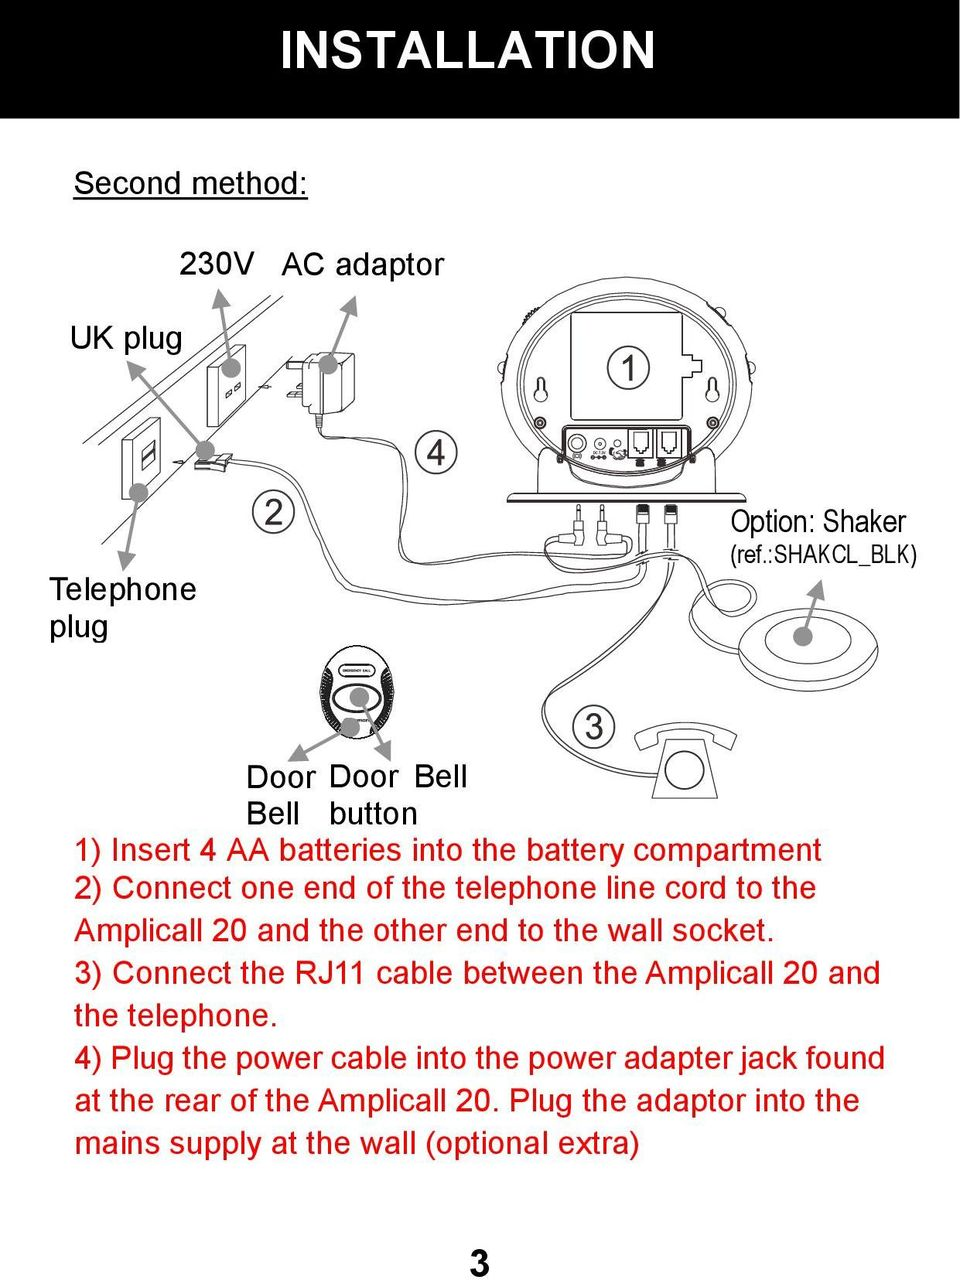 telephone line cord to the Amplicall 20 and the other end to the wall socket.